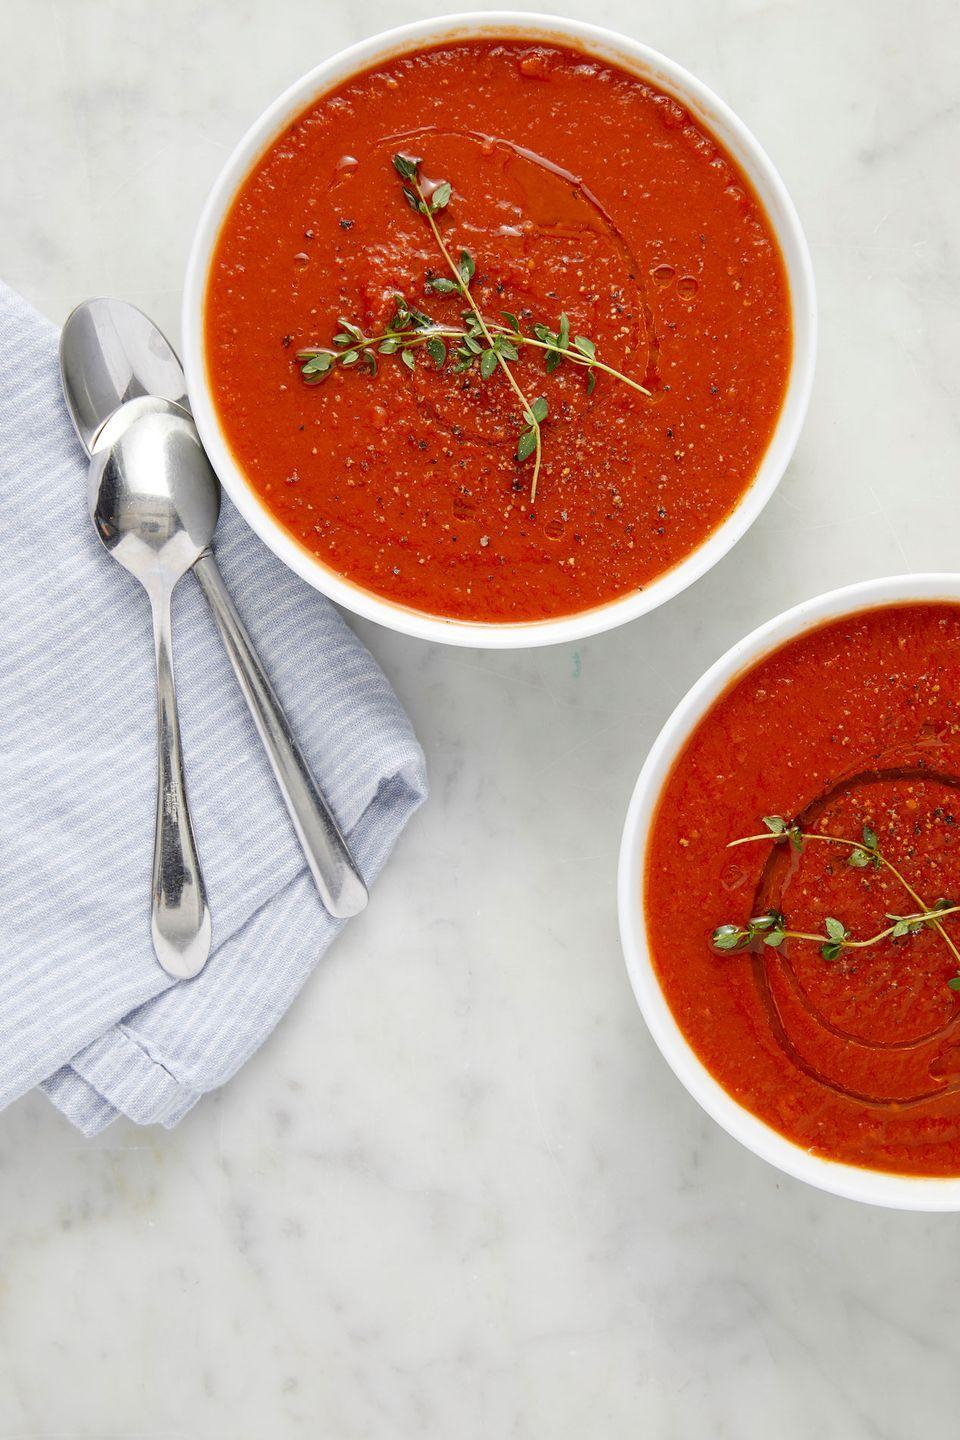 "<p>The fastest and most classic soup. Simplicity is sometimes best. </p><p>Get the recipe from <a href=""https://www.delish.com/cooking/recipe-ideas/a23513895/classic-tomato-soup-recipe/"" rel=""nofollow noopener"" target=""_blank"" data-ylk=""slk:Delish"" class=""link rapid-noclick-resp"">Delish</a>. </p>"